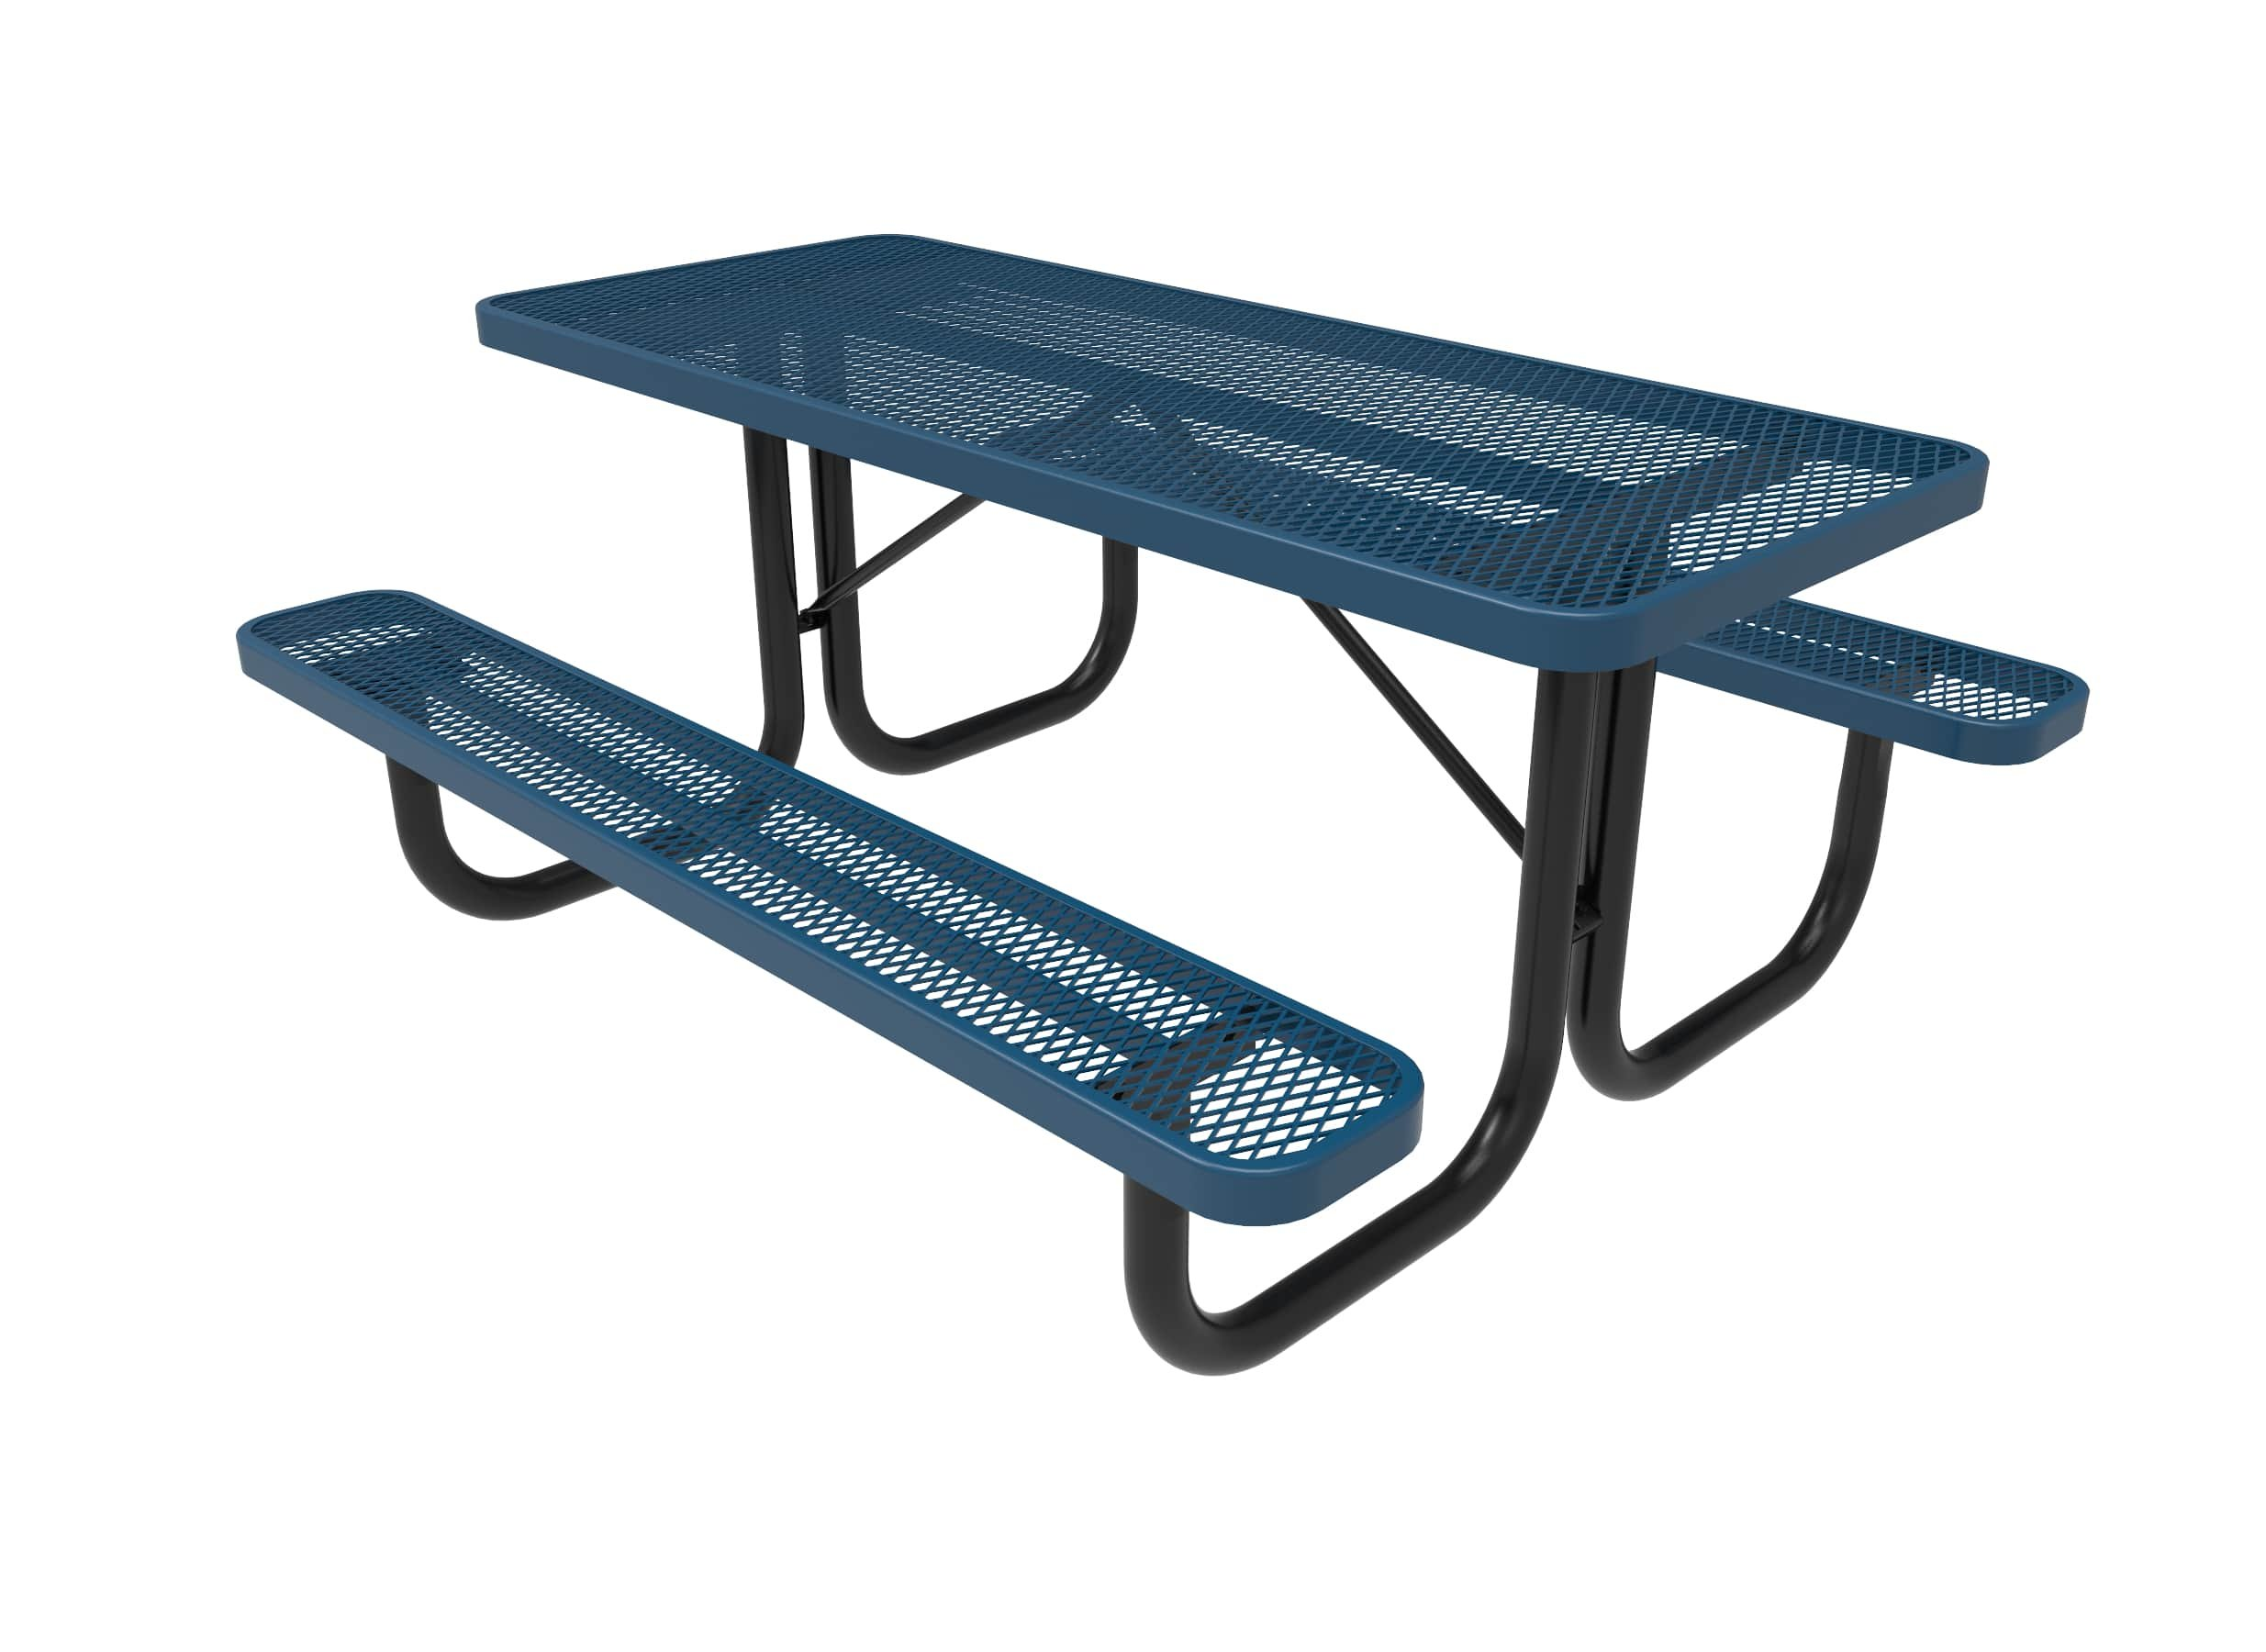 Coated Outdoor Furniture T6-LBL Rectangular Portable Picnic Table, 6 Feet, Light Blue by CoatedOutdoorFurniture